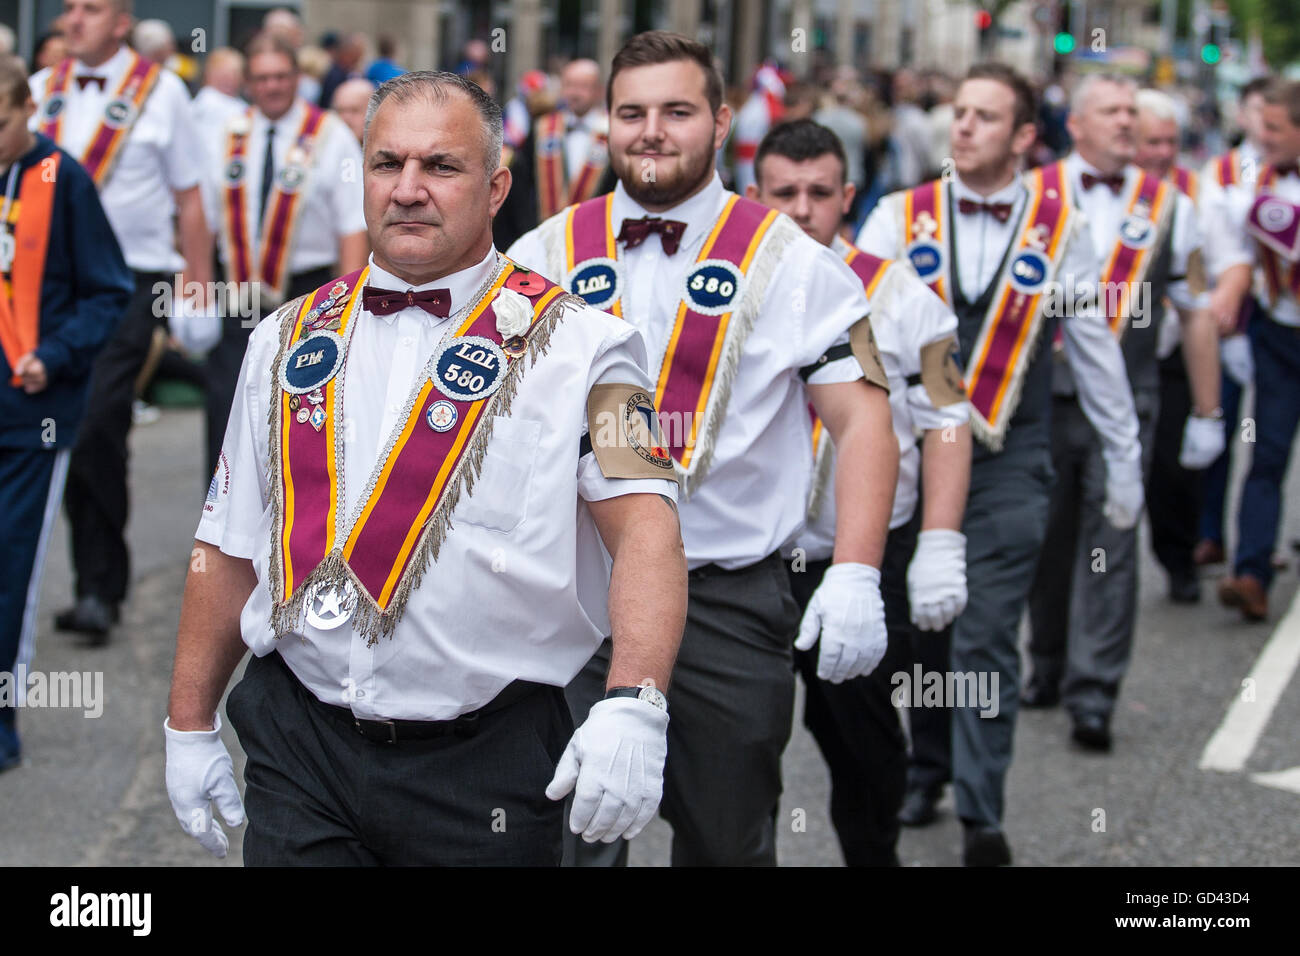 Belfast, UK. 12th July 2016. Orangemen celebrate the Twelfth. It originated during the late 18th century in Ulster. - Stock Image